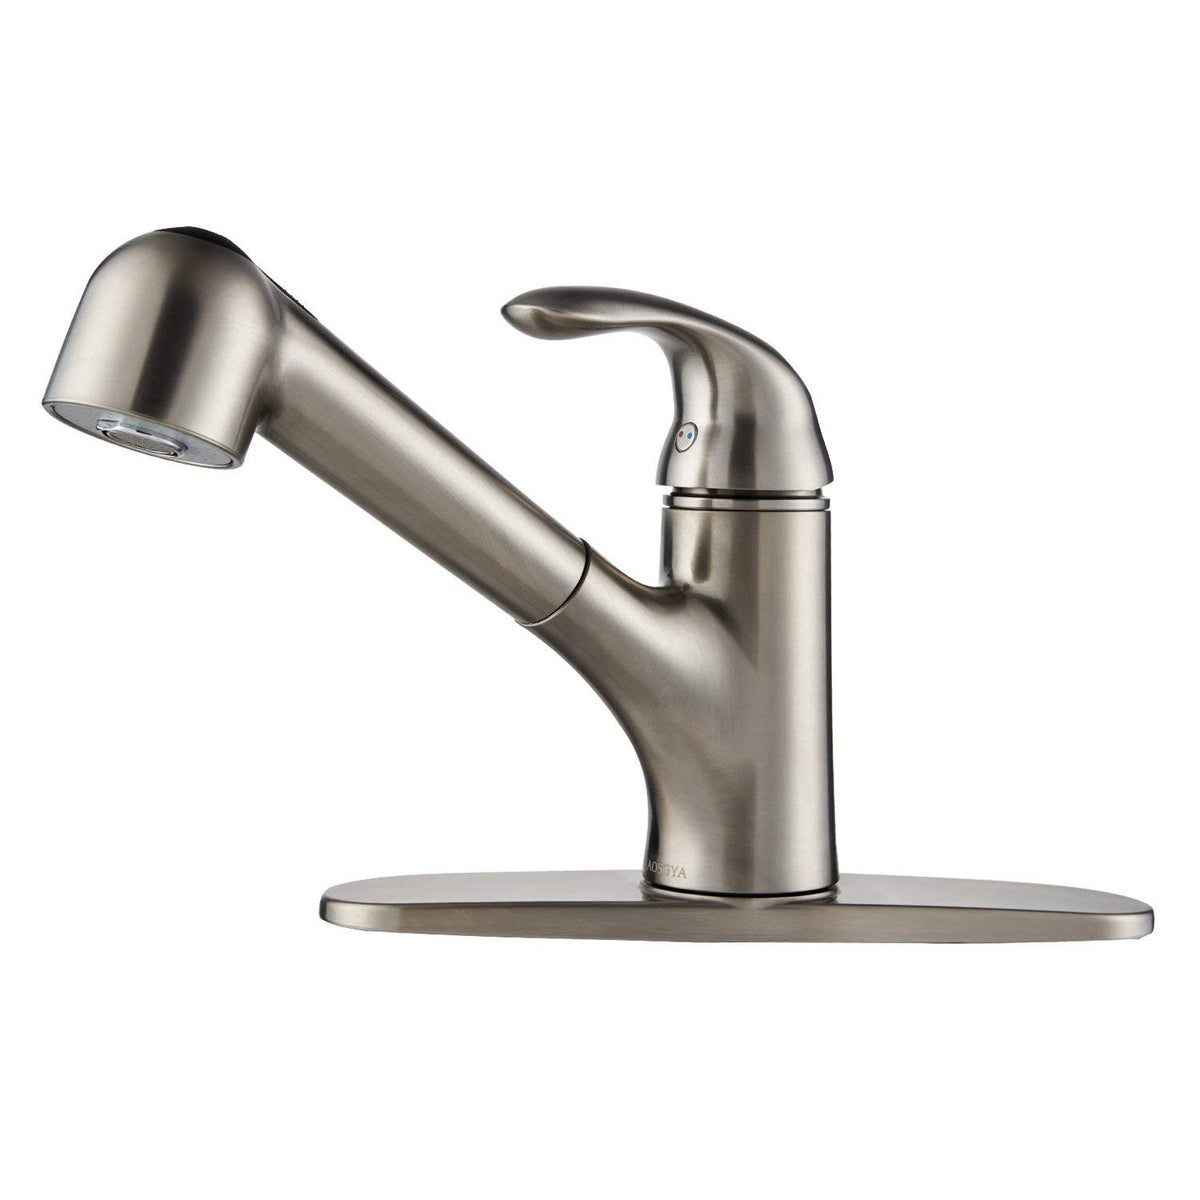 Best Kitchen Sink Faucets: AOSGYA Pull-out Kitchen Sink Faucet